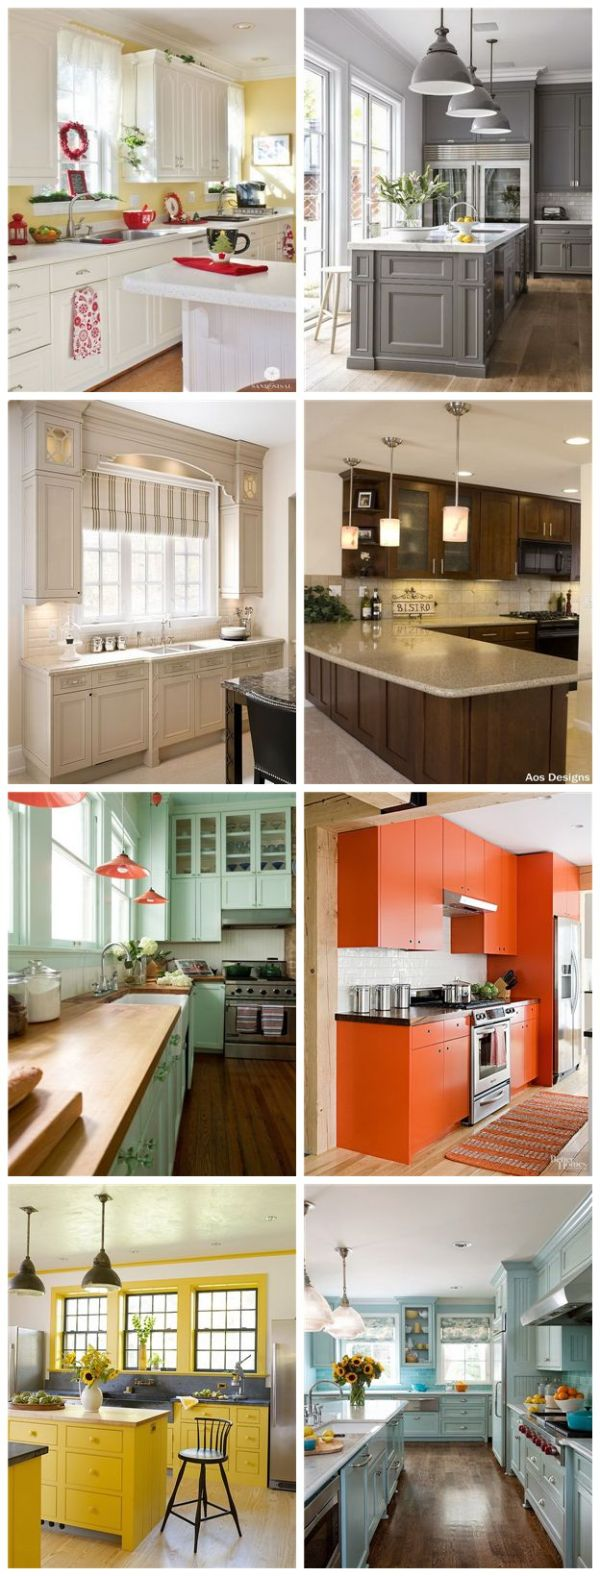 Most Popular Kitchen Cabinet Paint Color Ideas - For ...